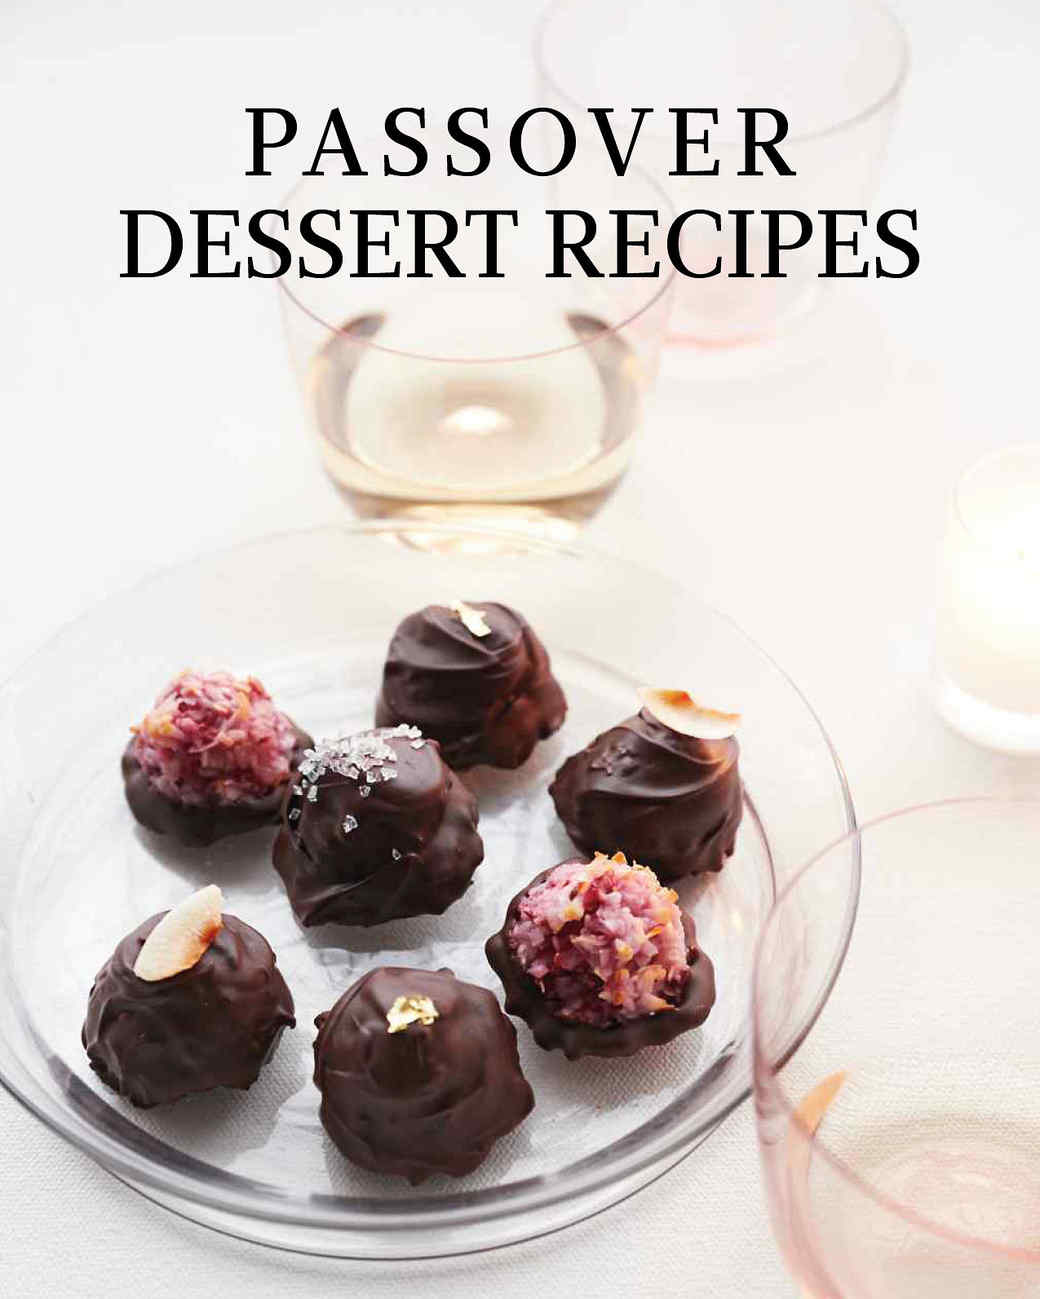 passover-dessert-recipes2.jpg